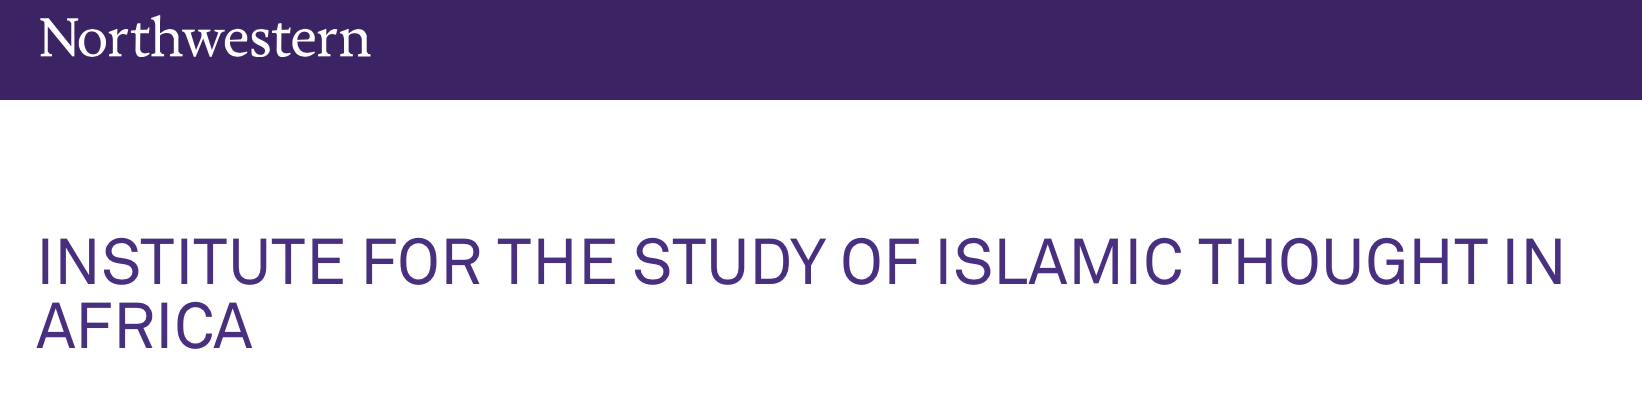 Institute for the Study of Islamic Thought in Africa